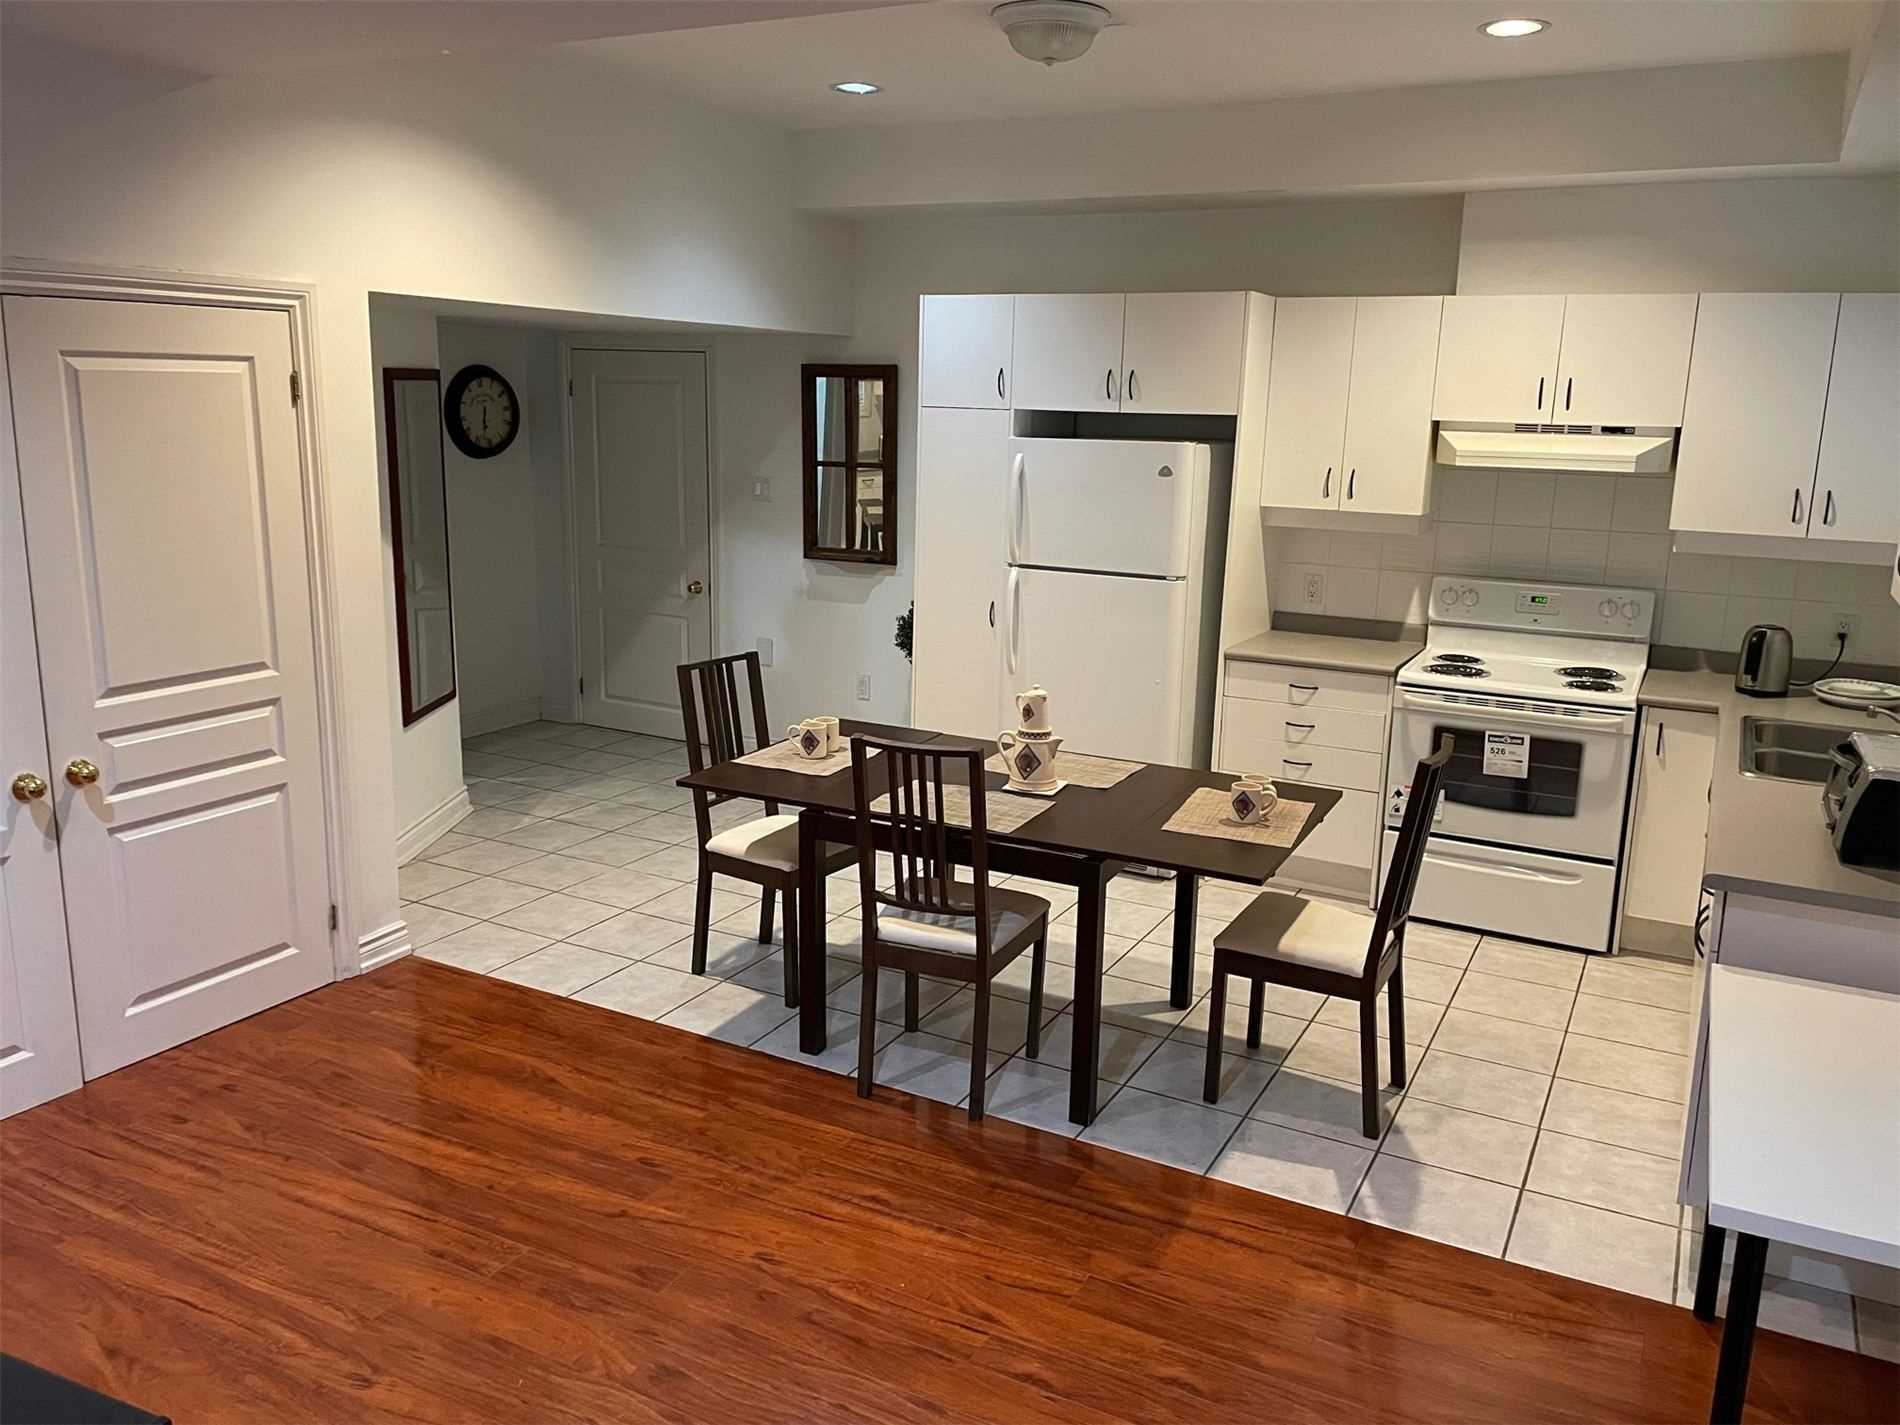 Image 1 of 10 showing inside of 1 Bedroom Detached 2-Storey for Lease at 40 Madawaska Ave, Toronto M2M2P9